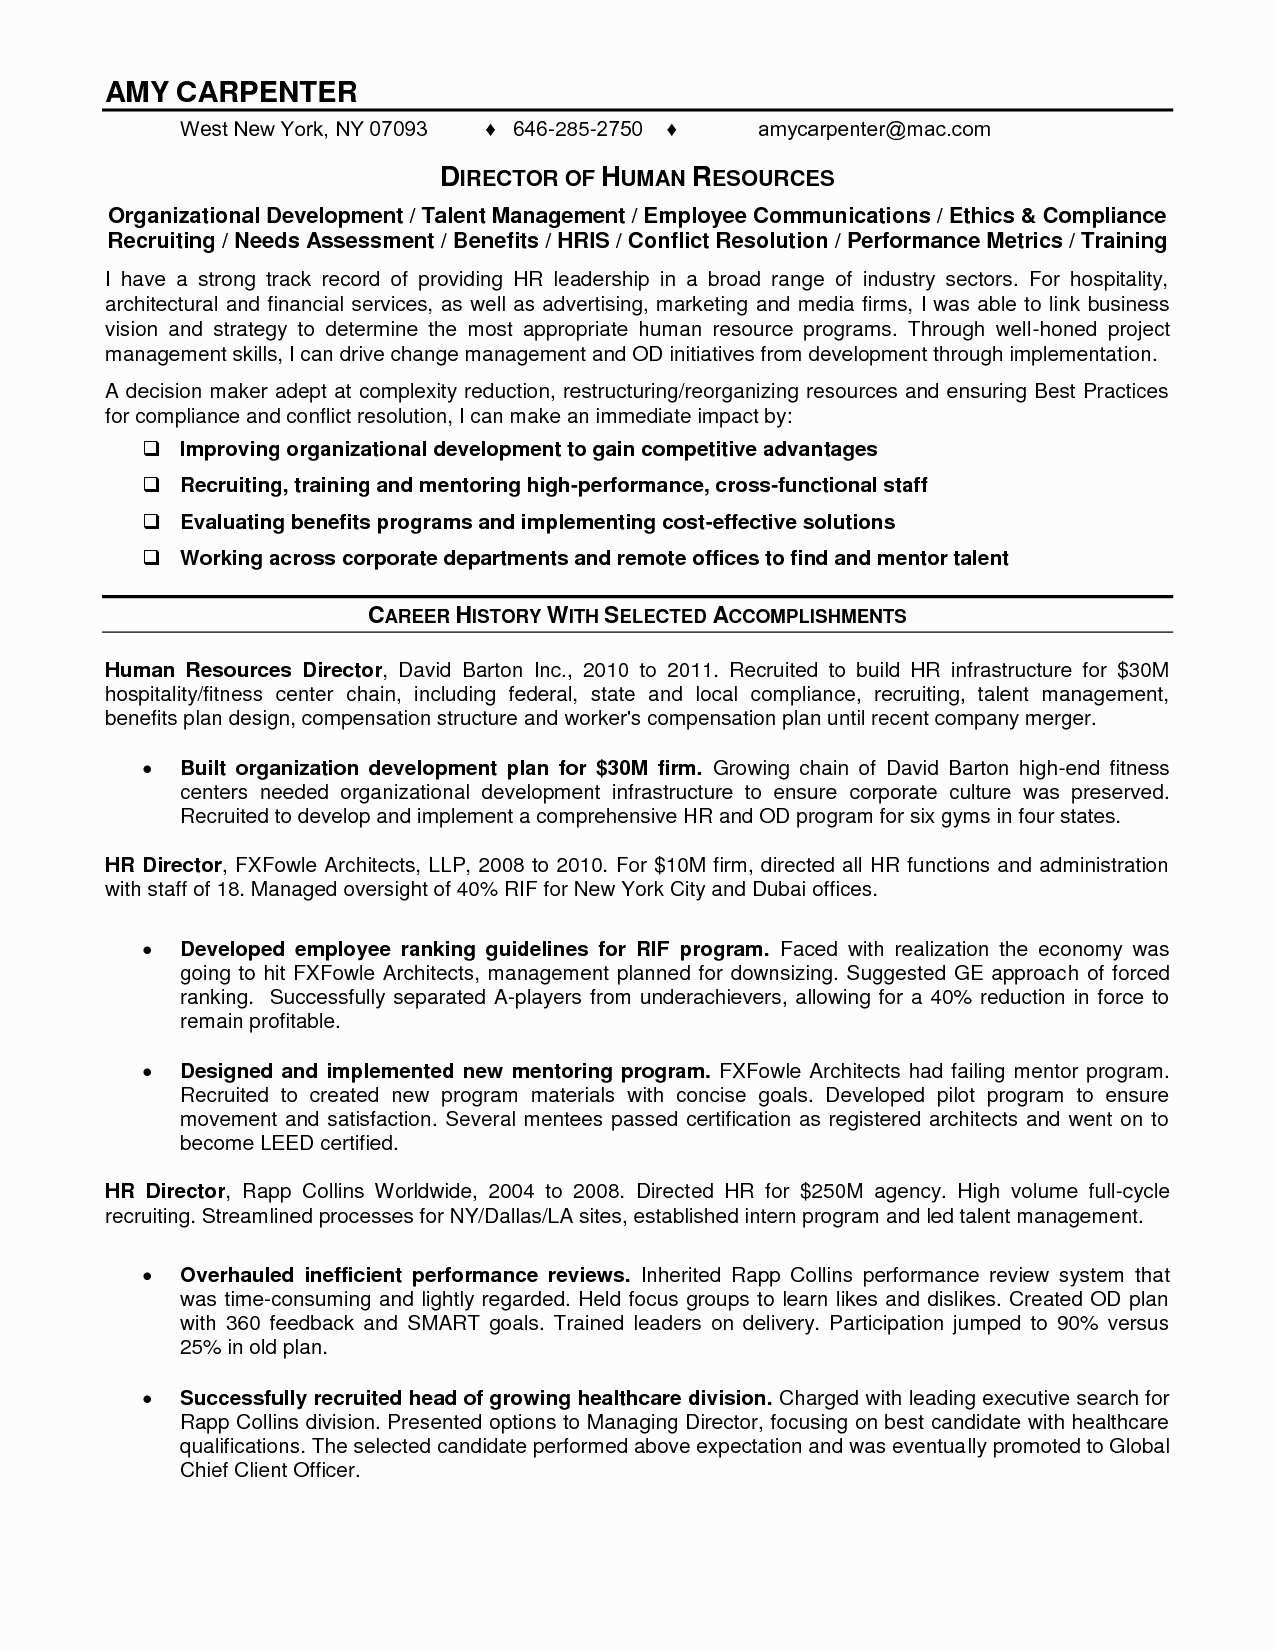 Letter Of Understanding Template Word - Business Memorandum Understanding Template New Memorandum